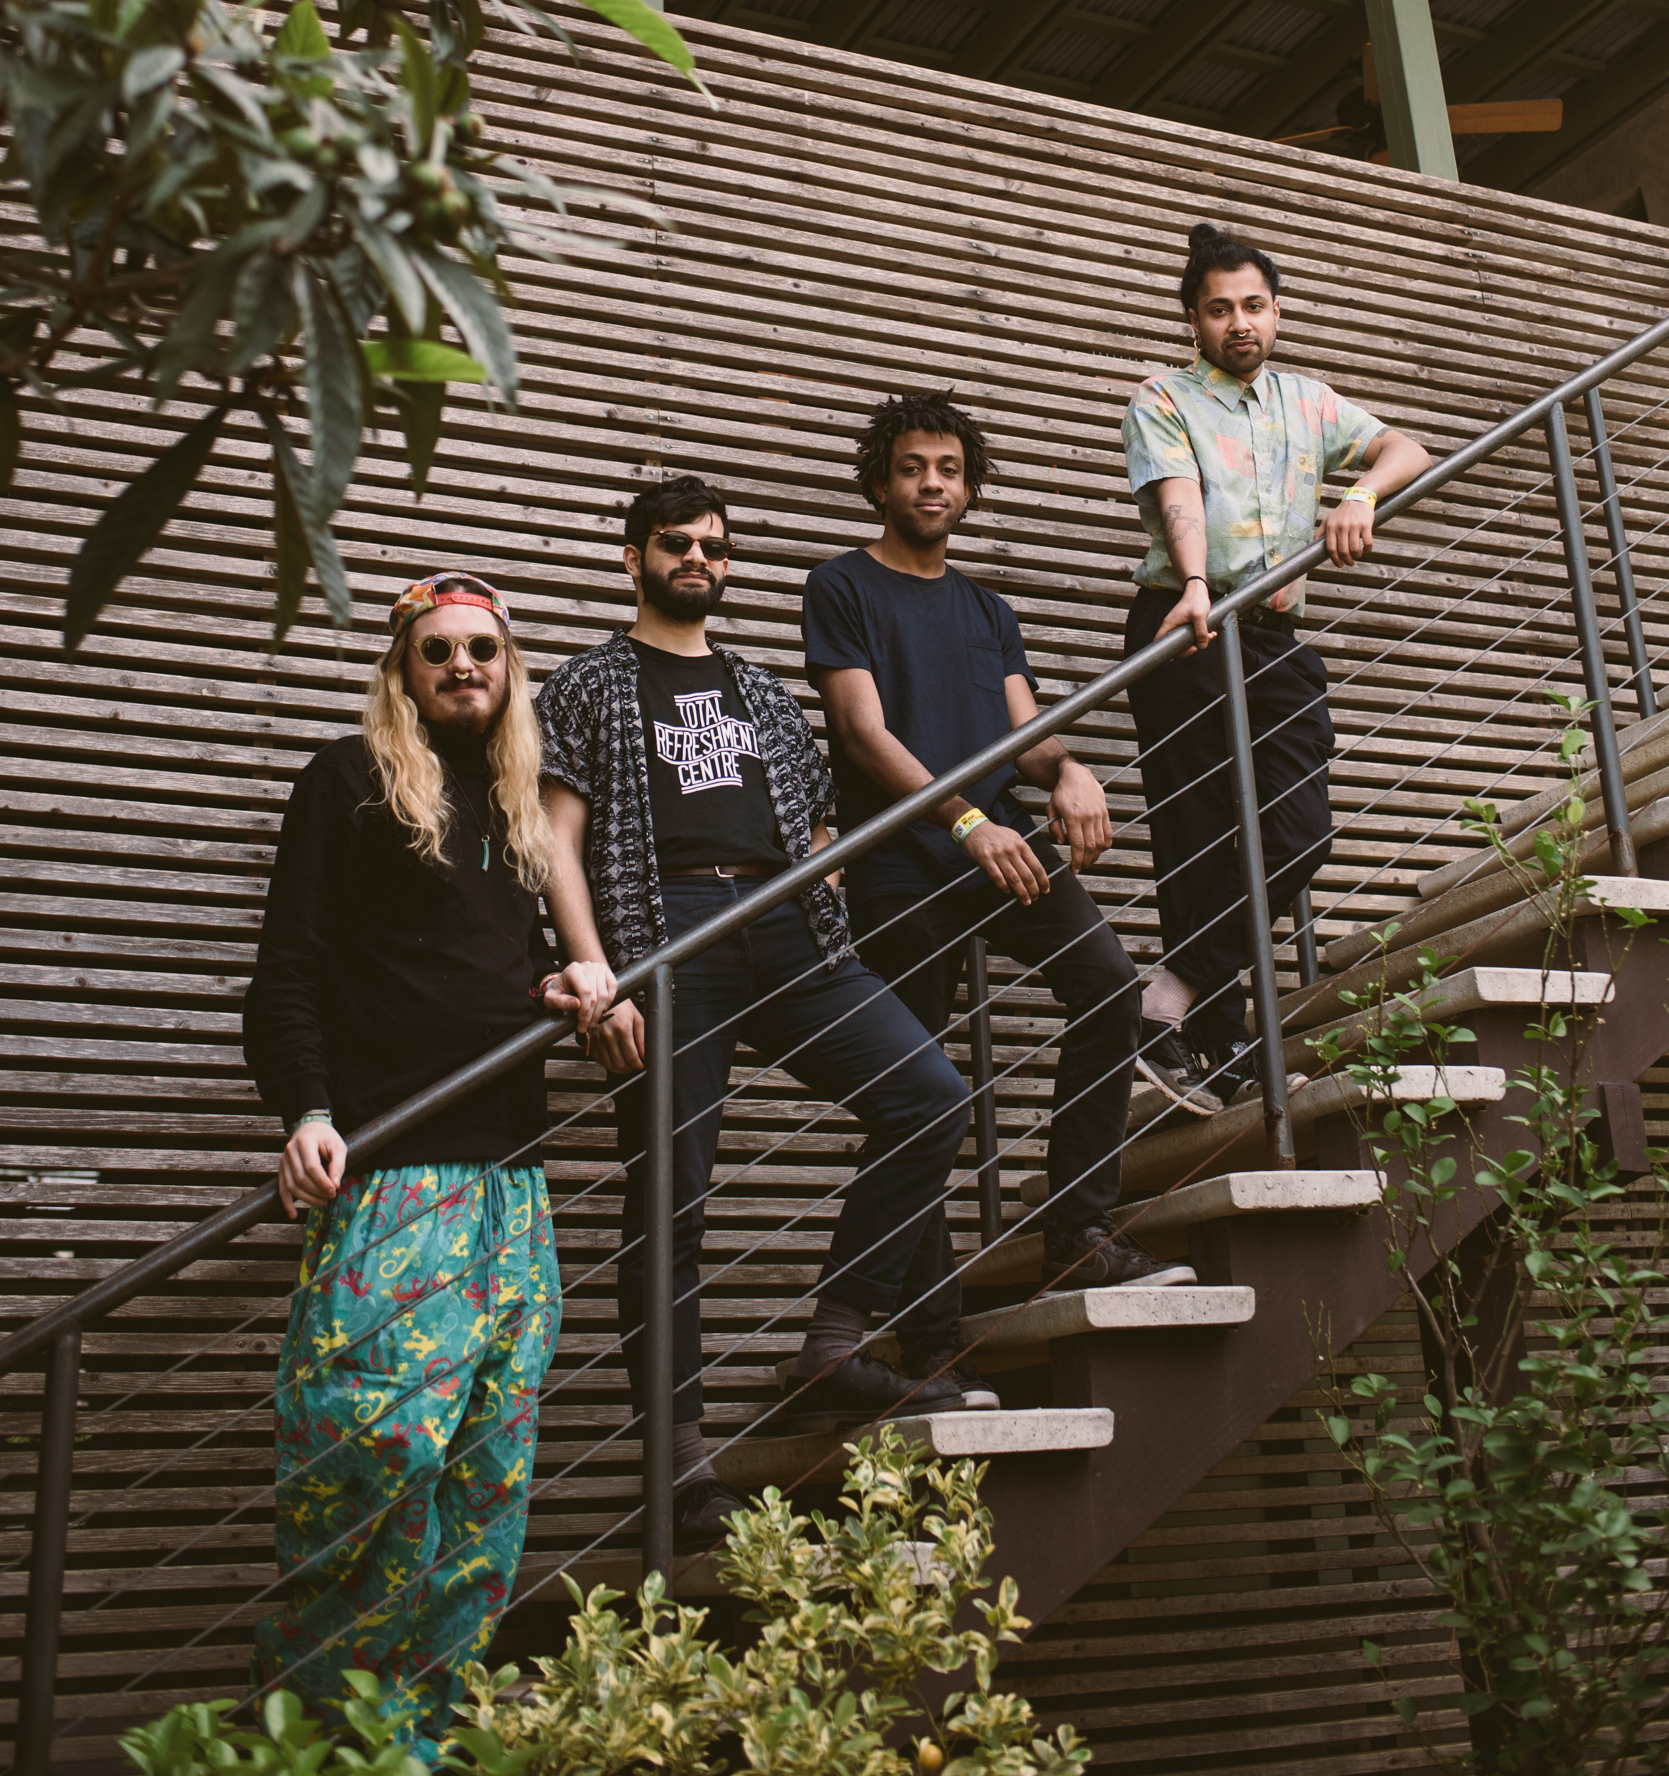 FLAMINGODS - Formed in Bahrain, multi-instrumentalist quintet Flamingodsare informed by the imagery, music and concepts of far-flung cultures as well as experimental, psych, rock and pop artists such as Boredoms,Animal Collective,Sun Araw,Sun City,Girlsand Deerhunter.